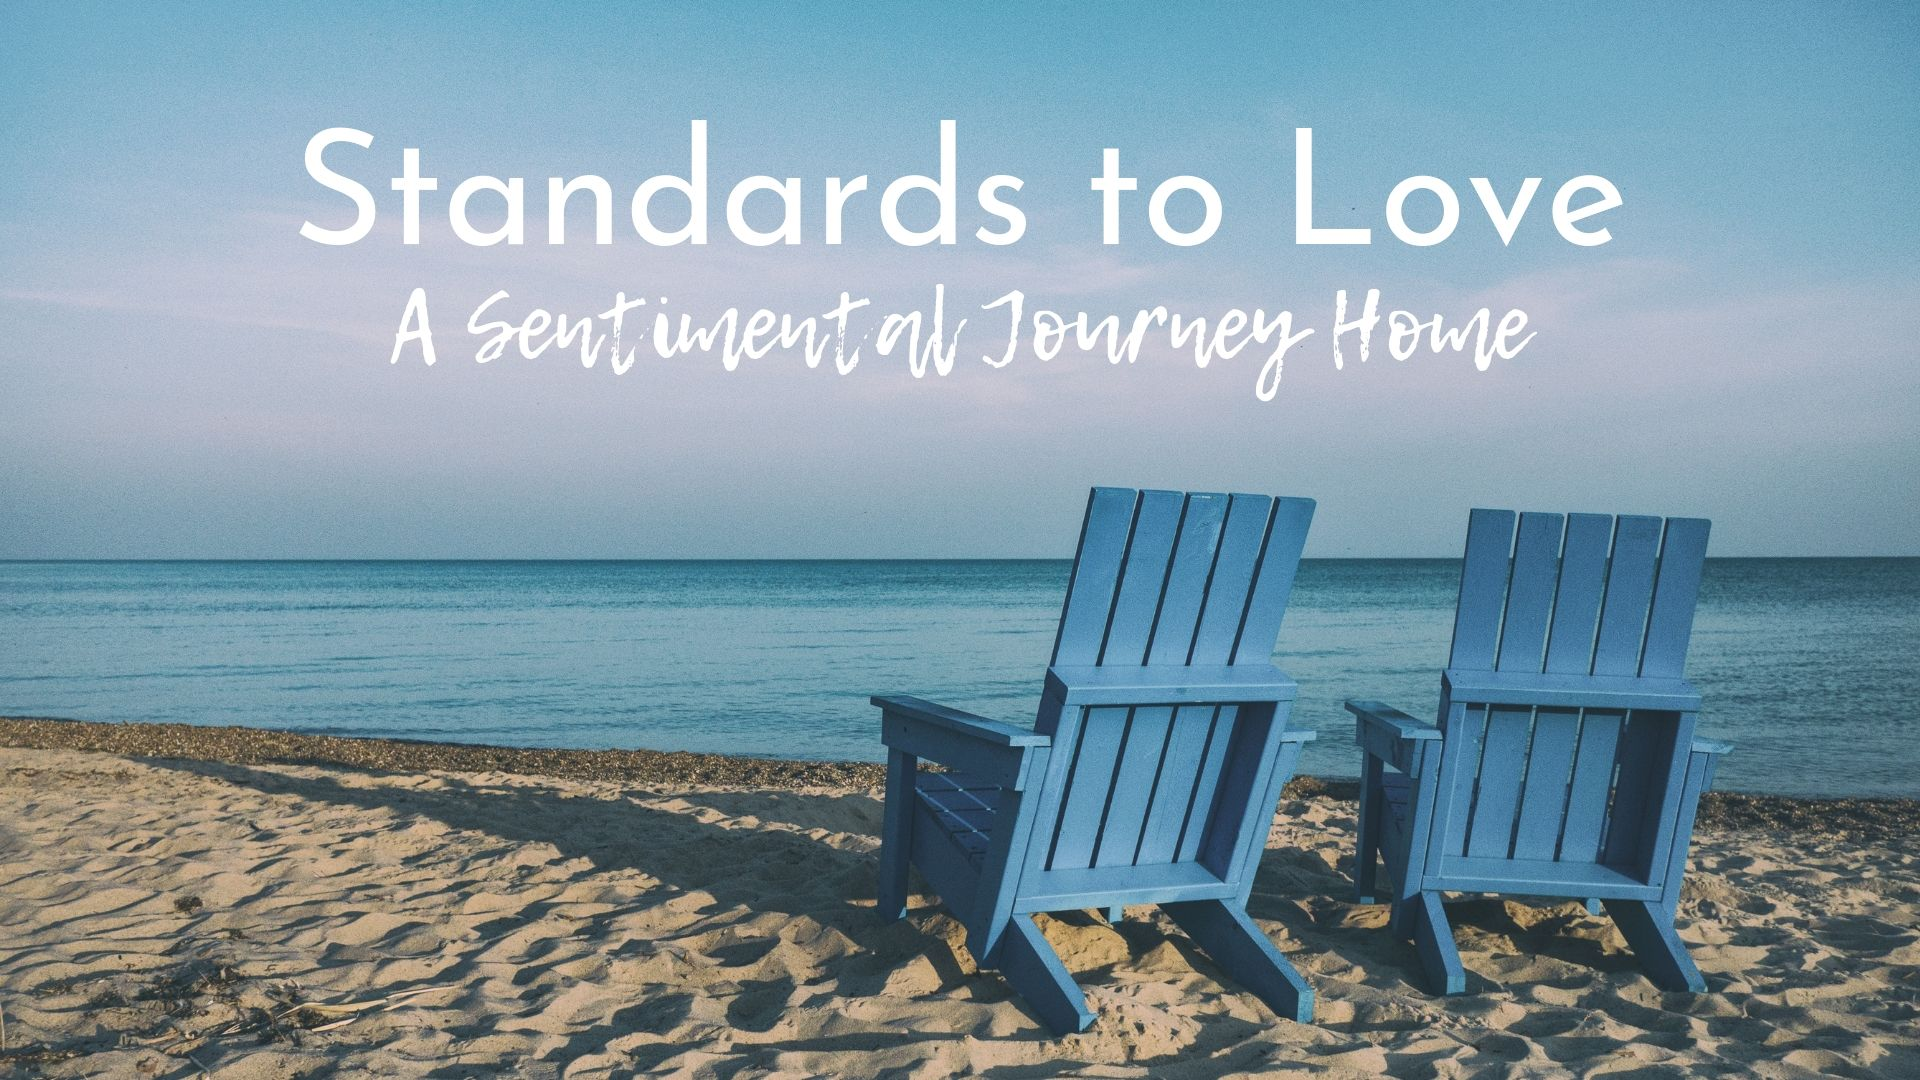 banner-standards-to-love-a-sentimental-journey-home-01.jpg